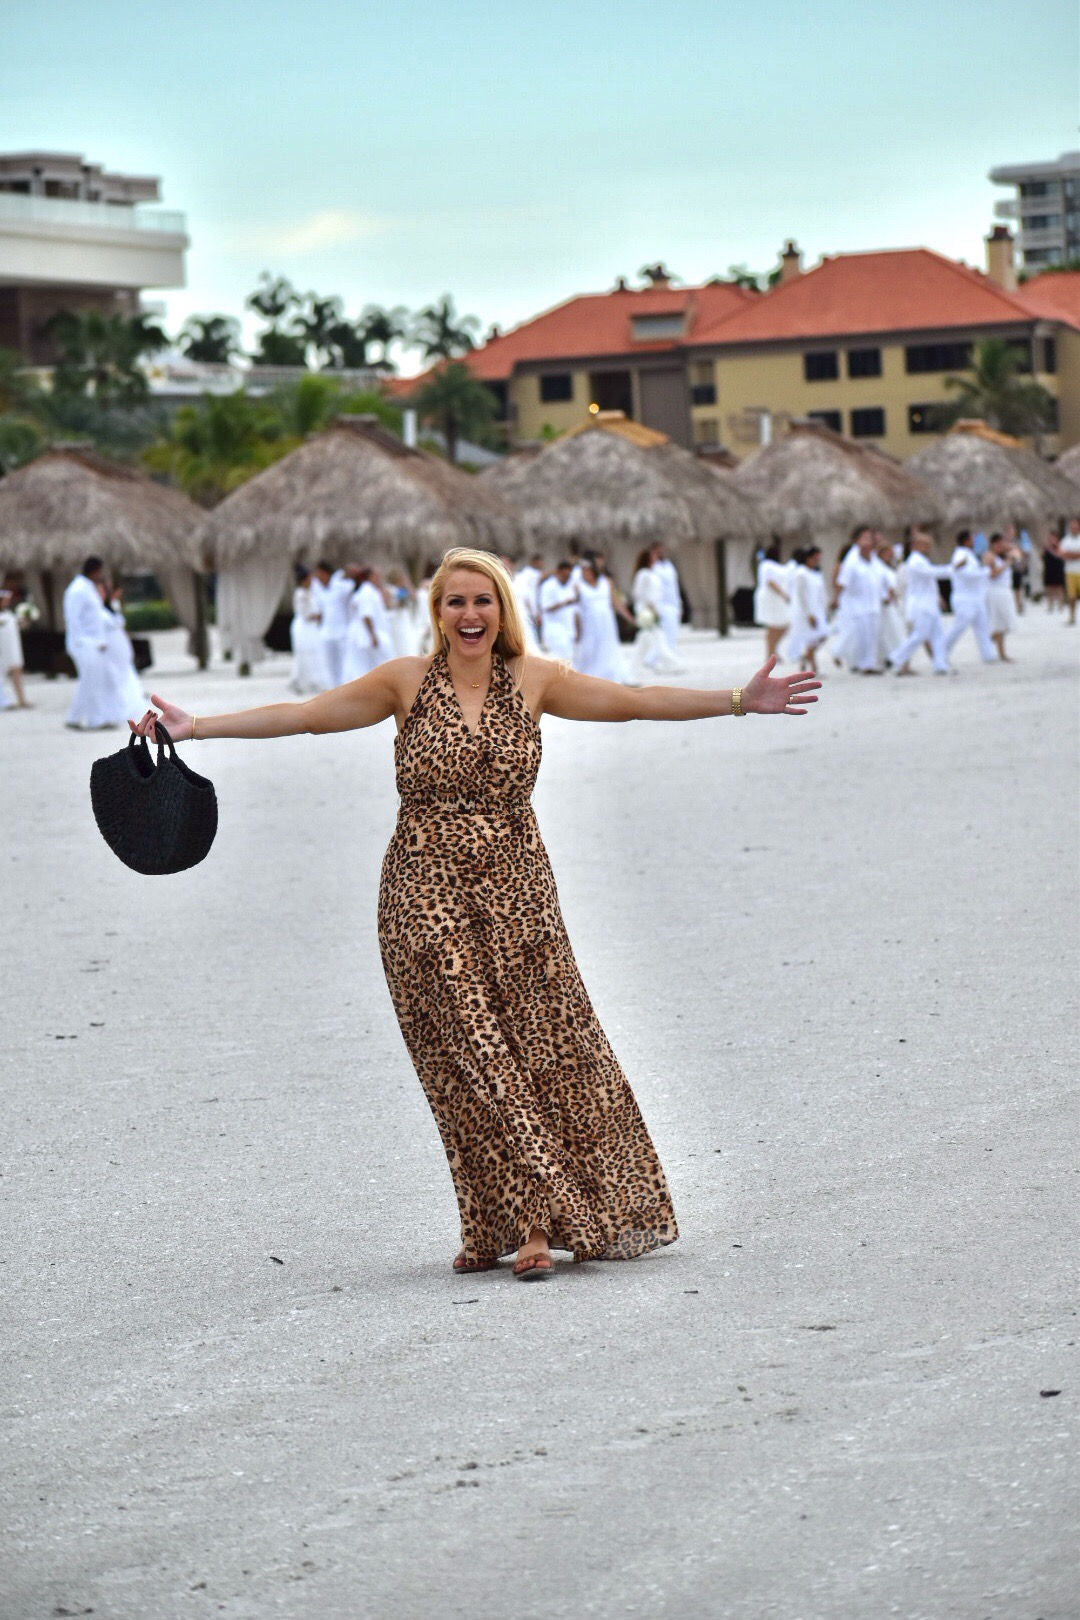 Leopard Dress, Leopard, Chetta B Leopard Print Dress, Gorjana Jewelry and Black Straw Tote in Marco Island Florida